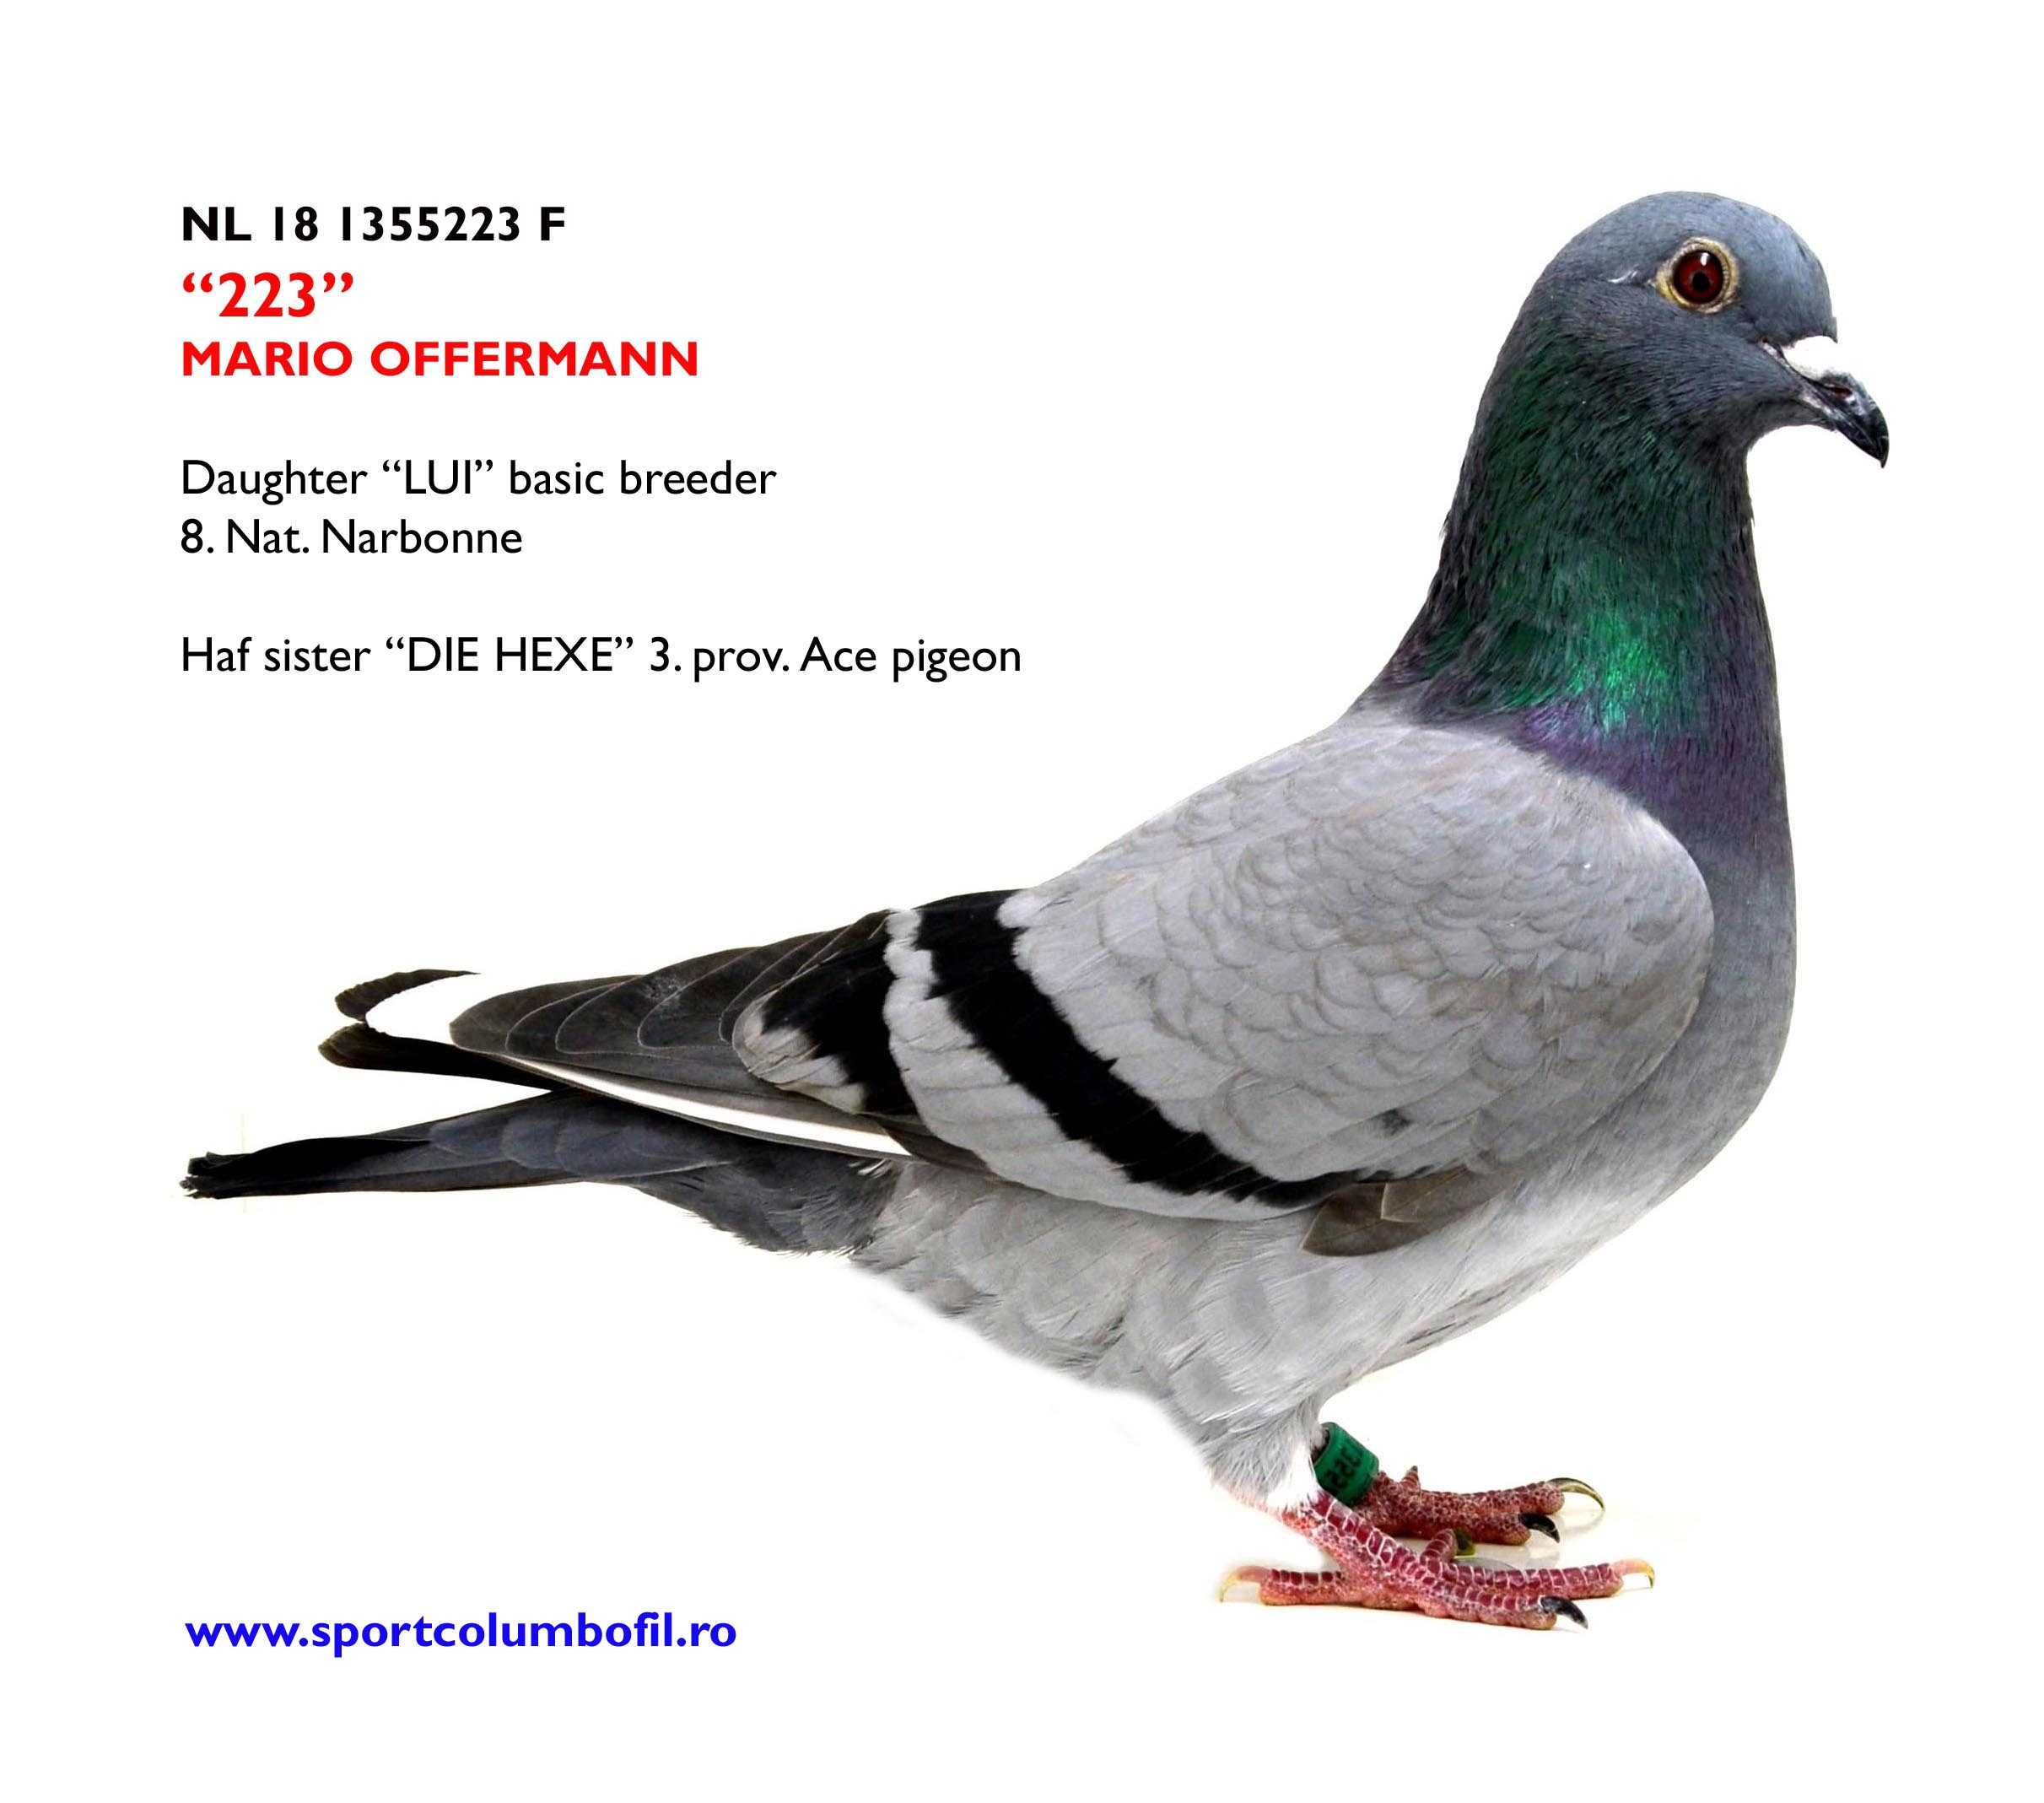 NL 18 1355223 F - Daughetr LUI basic breeder x daughter BIJTER Huub Smeets